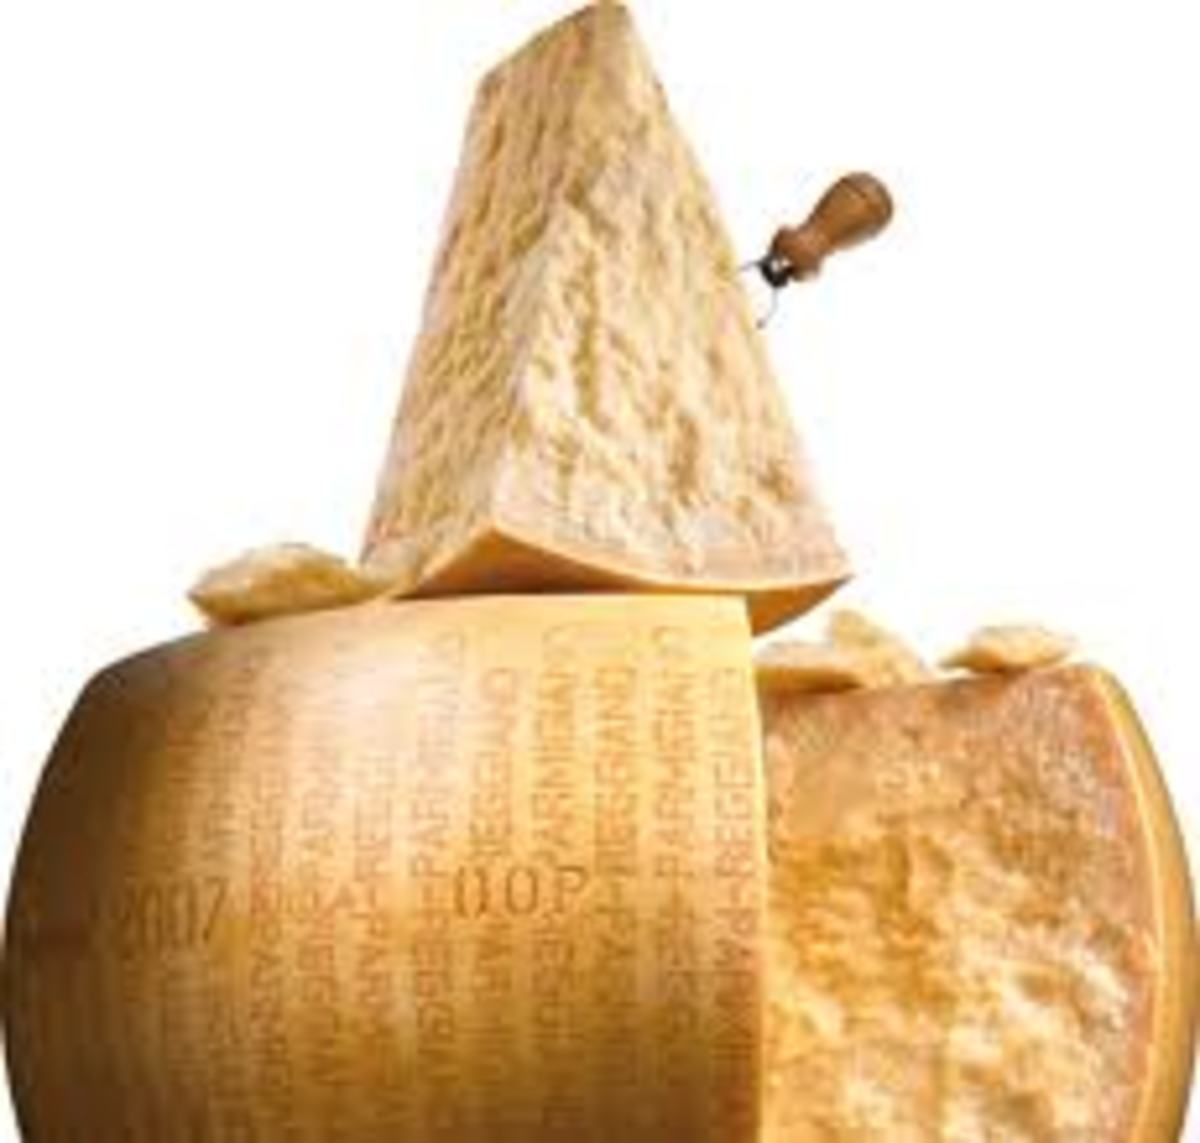 One cheese wheel of Parmigiano Reggiano that has been cut to use, just look at the texture you almost can taste it, yum!